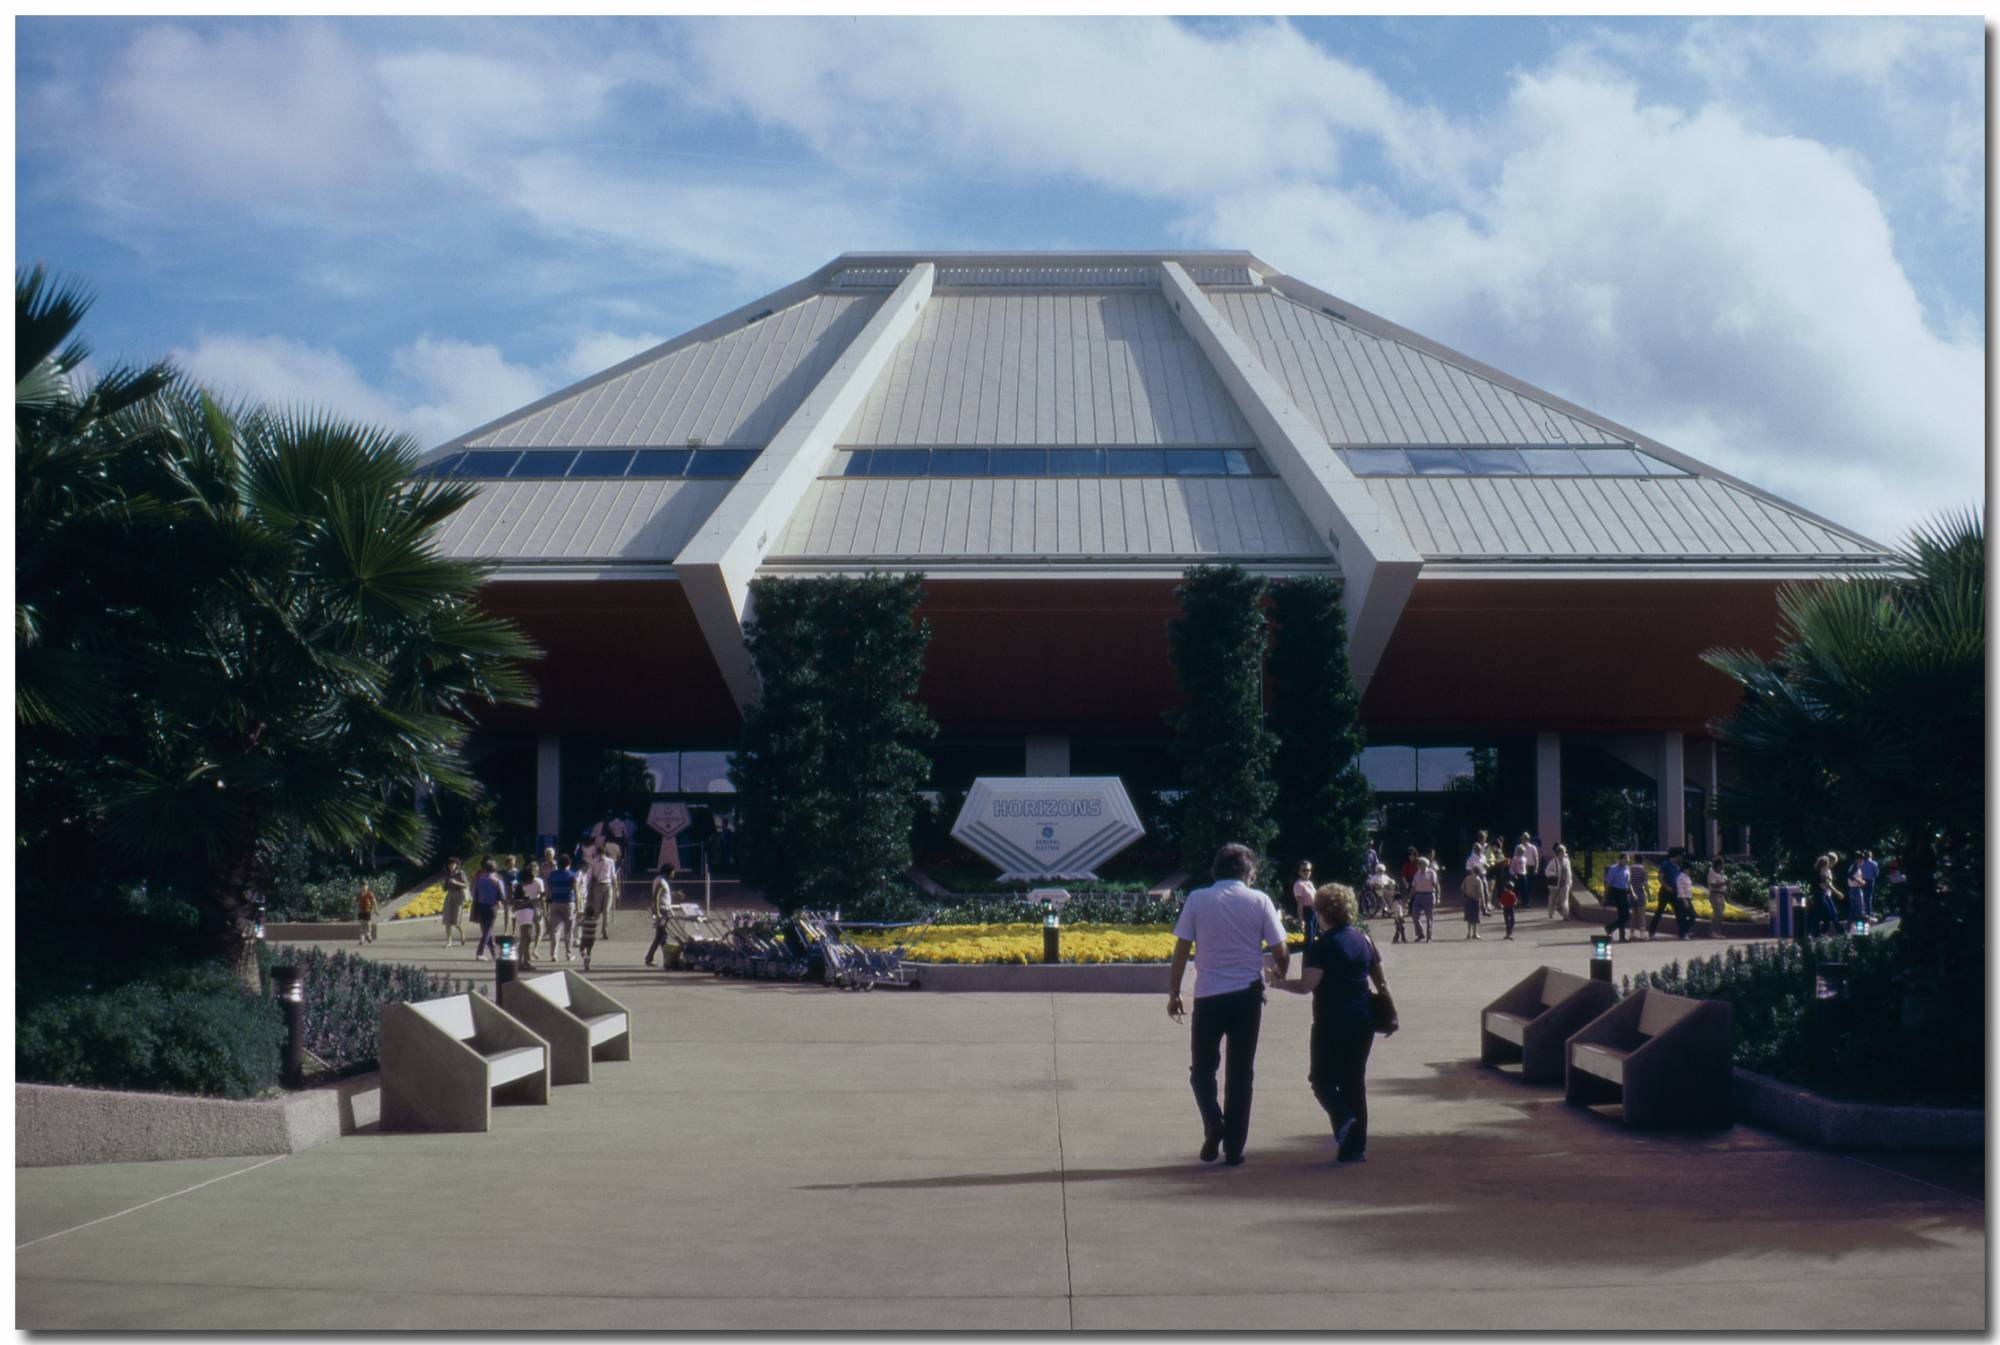 Travel back in time to Horizons, World of Motion, and Journey Into Imagination at Epcot | PassPorter.com